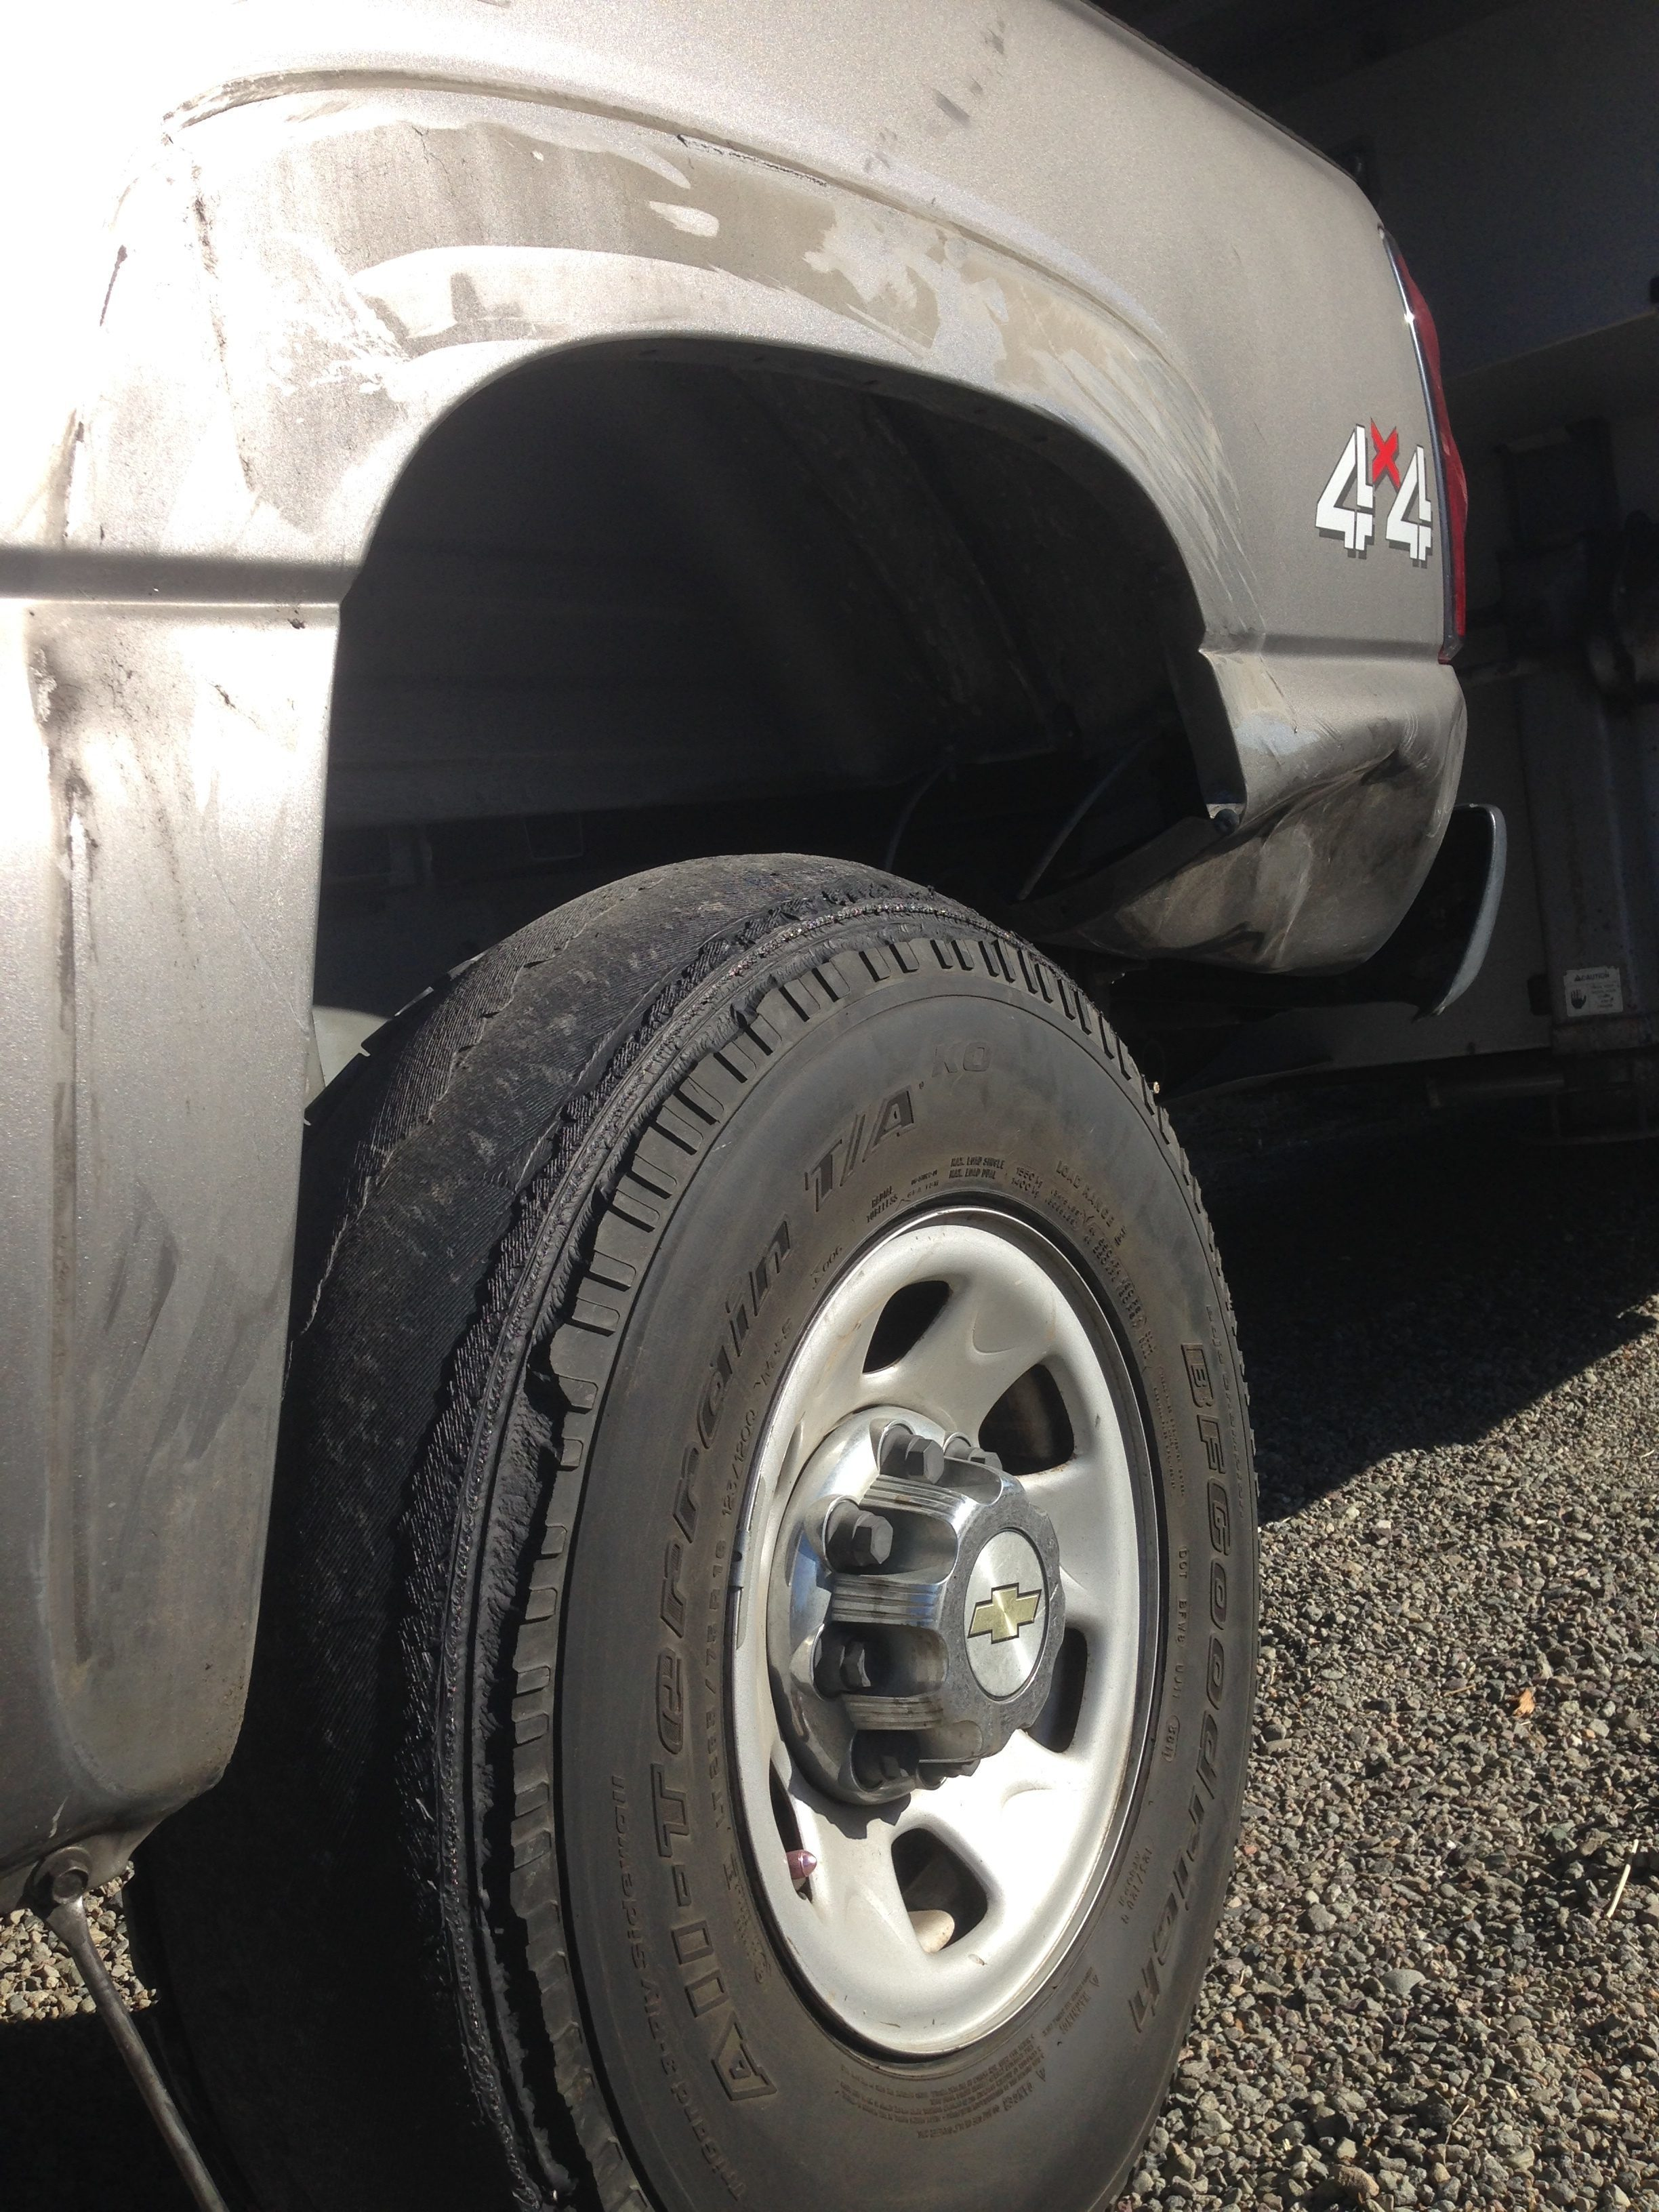 Bf Goodrich Truck Tires >> Top 153 Complaints and Reviews about B.F. Goodrich Tires